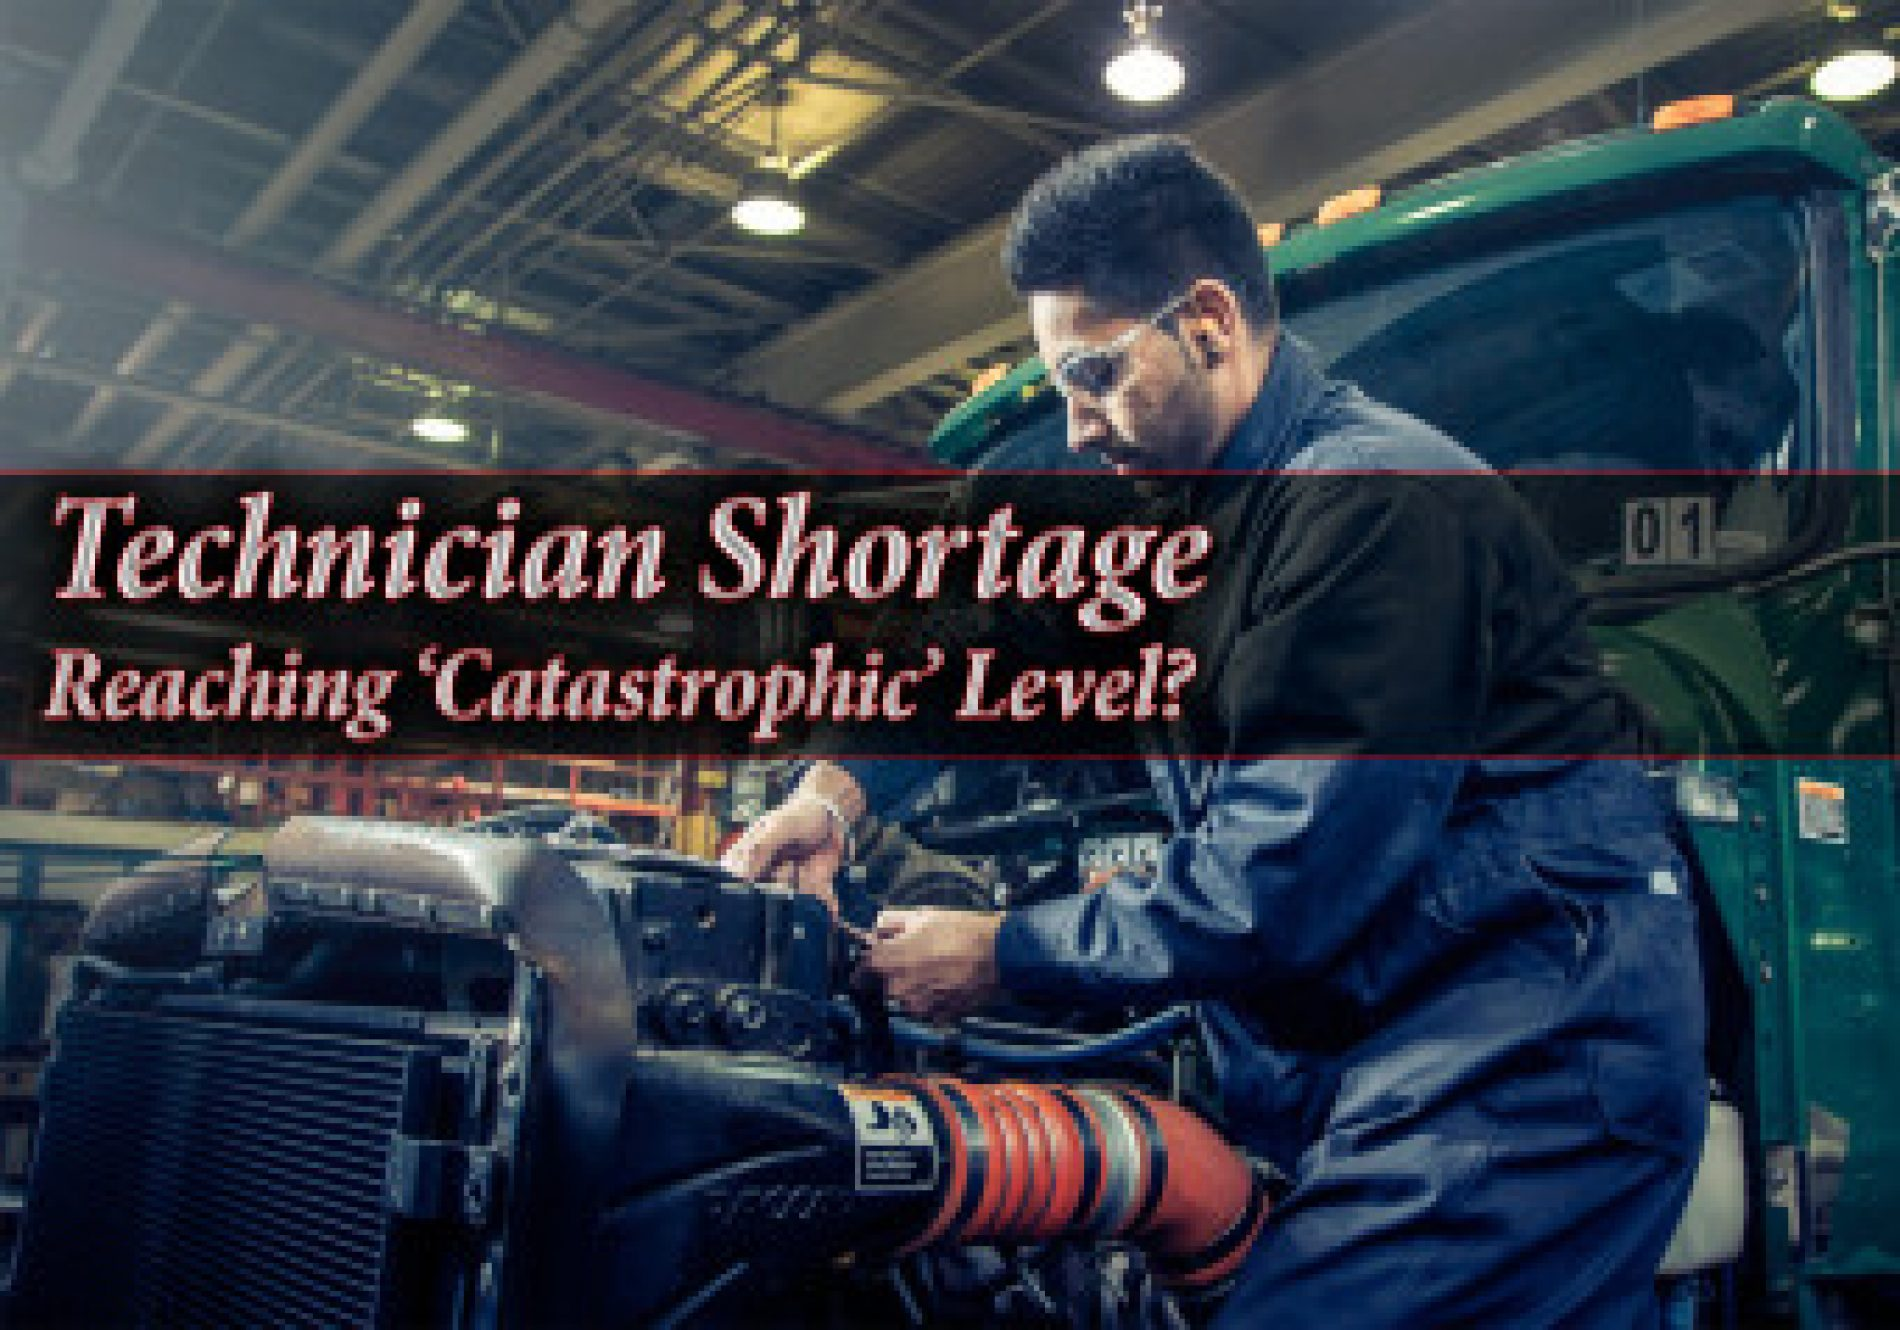 Solutions to our Technician Shortage